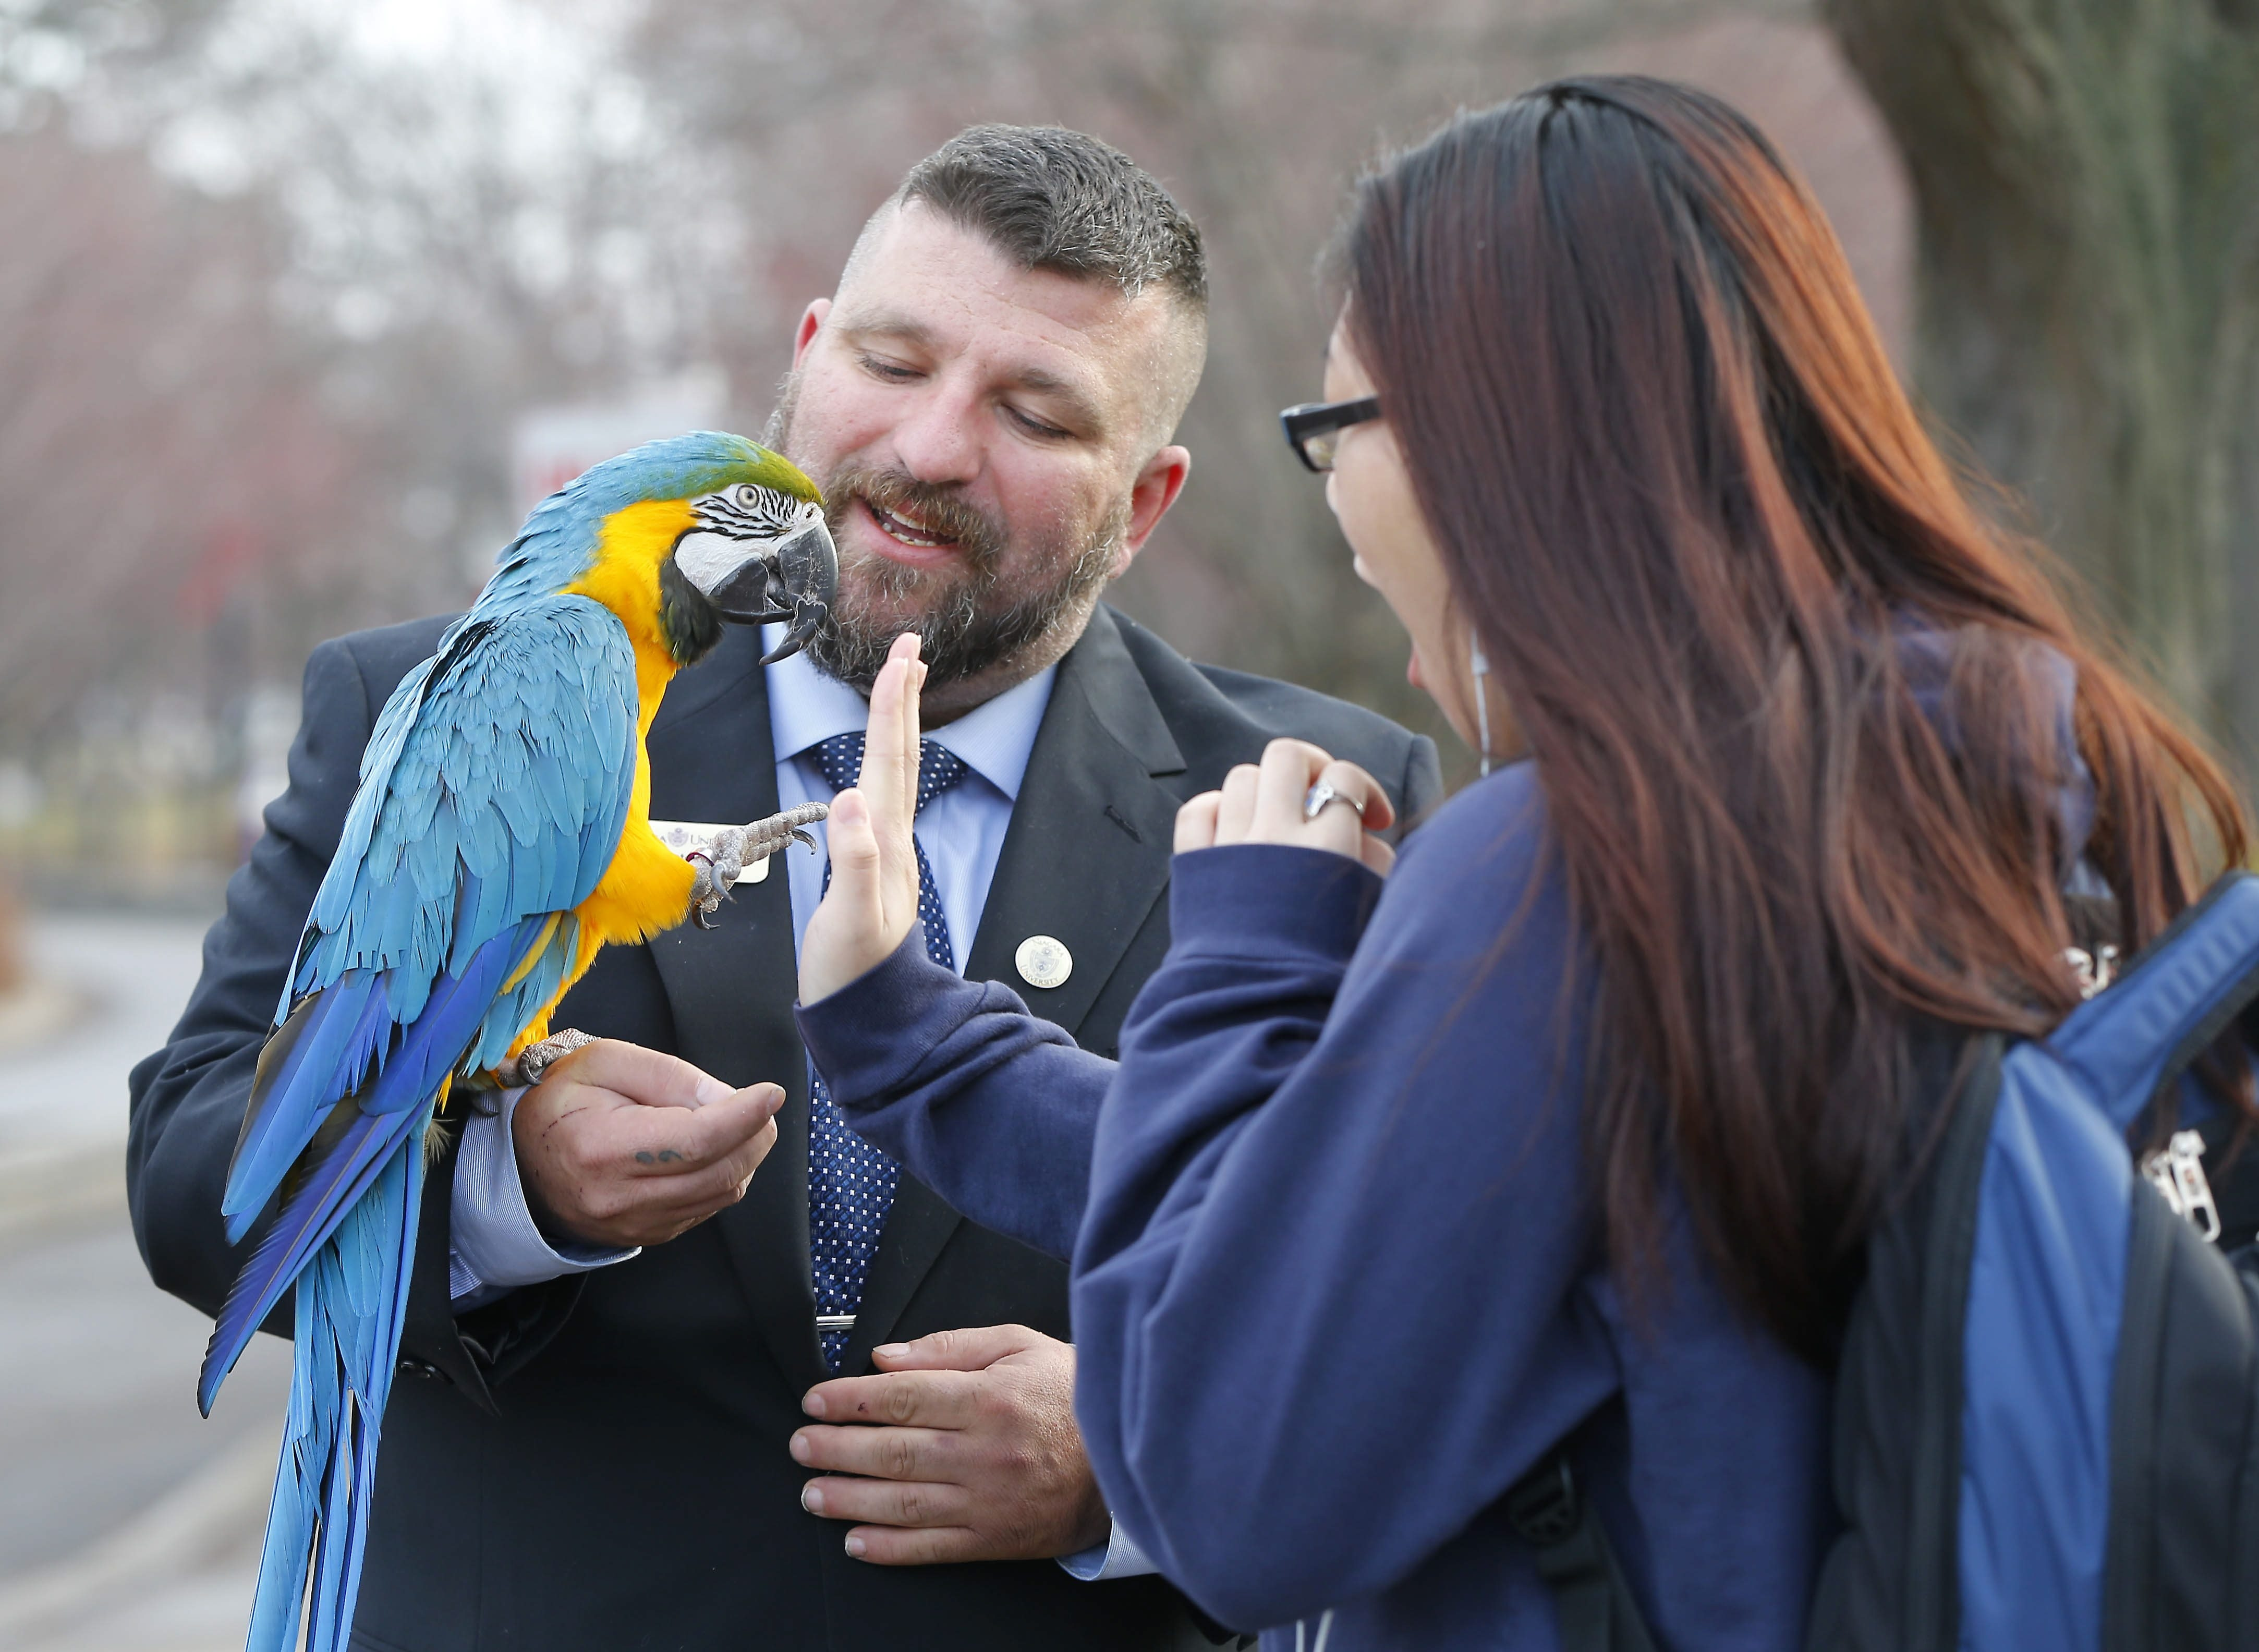 Karl R. Hinterberger, assistant veterans coordinator at Niagara University, encourages his prescribed service animal, Selina, as she shares a high-five with student Jessica Nguyen during a walk on campus.